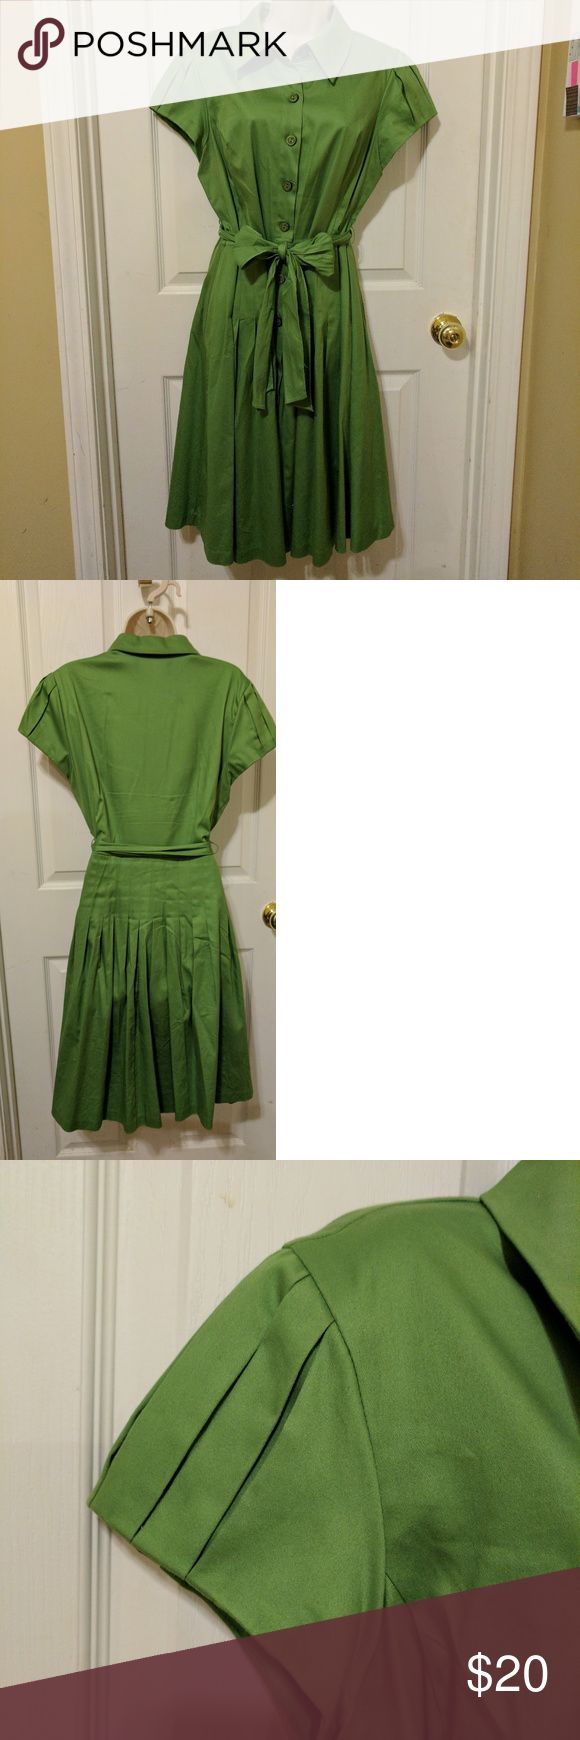 Kelly green dress This is a beautiful, vibrant green dress. It buttons up the front and has a pleated skirt. The belt ties in the front and the sleeves have flattering pleat details. Perceptions New York Dresses Midi